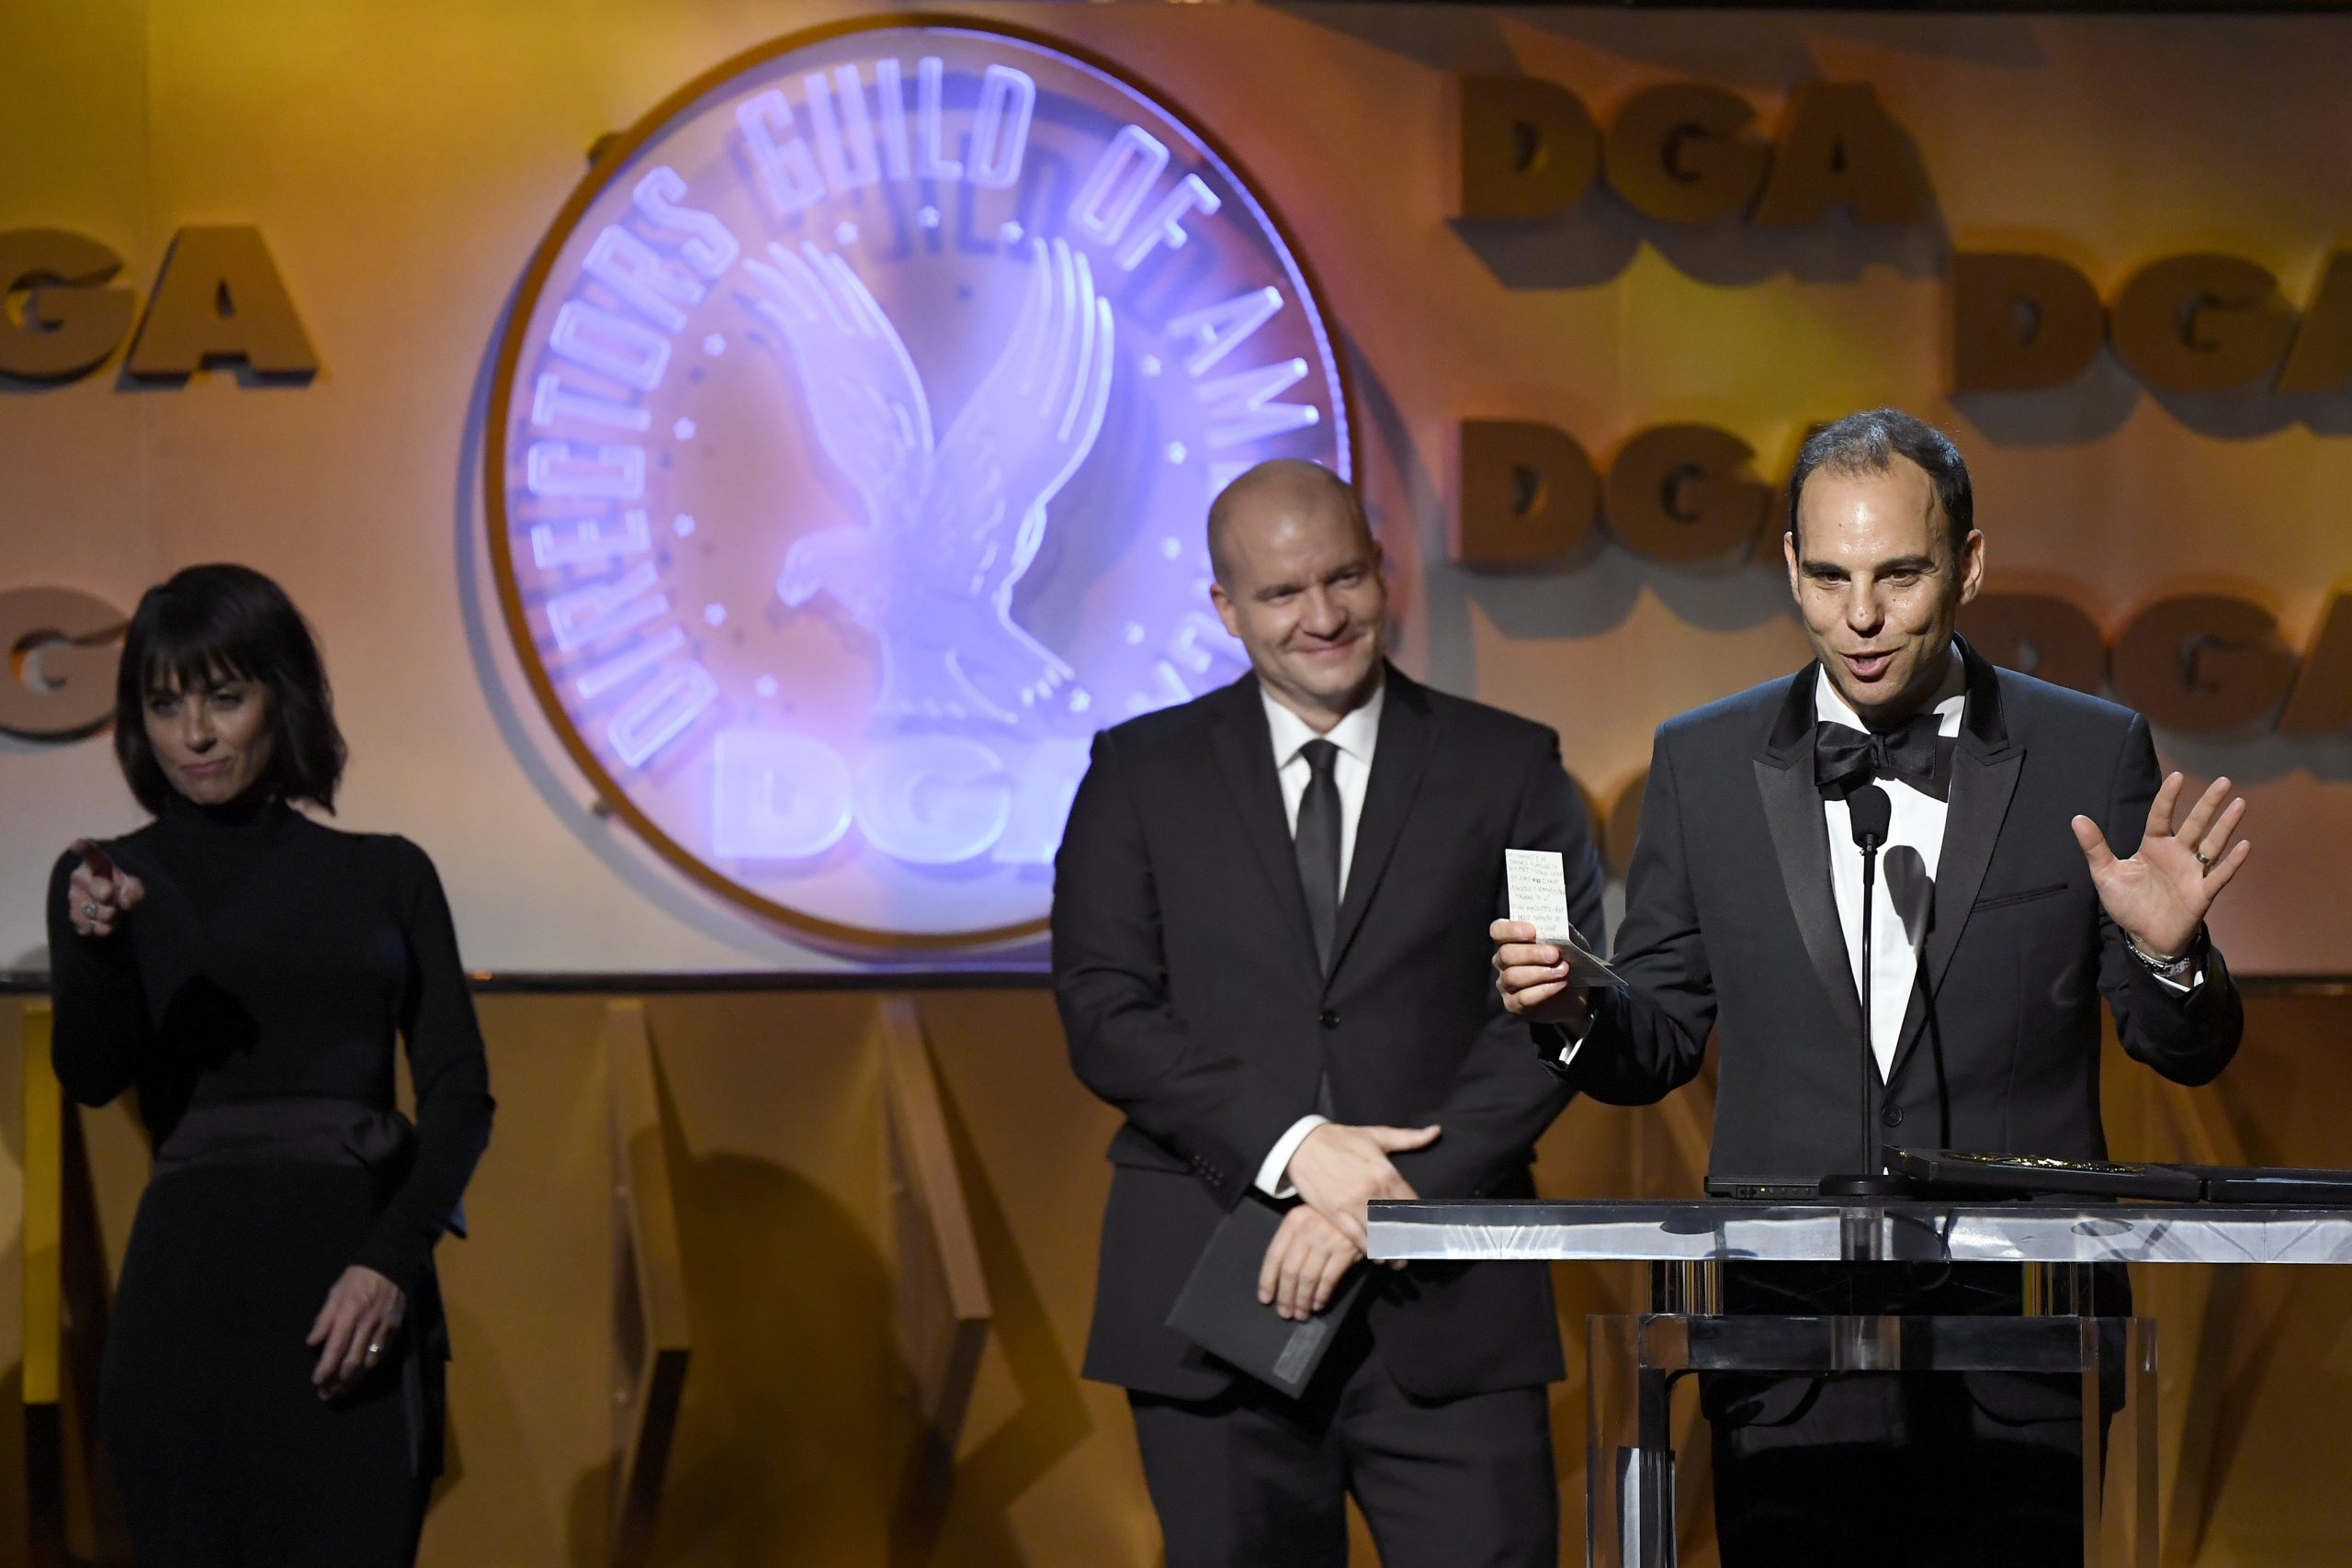 LOS ANGELES, CALIFORNIA - JANUARY 25: Daniel Shultz (C) and Jason Cohen (R) accept Reality Programs for ''Encore!' onstage during the 72nd Annual Directors Guild Of America Awards at The Ritz Carlton on January 25, 2020 in Los Angeles, California. (Photo by Kevork Djansezian/Getty Images)